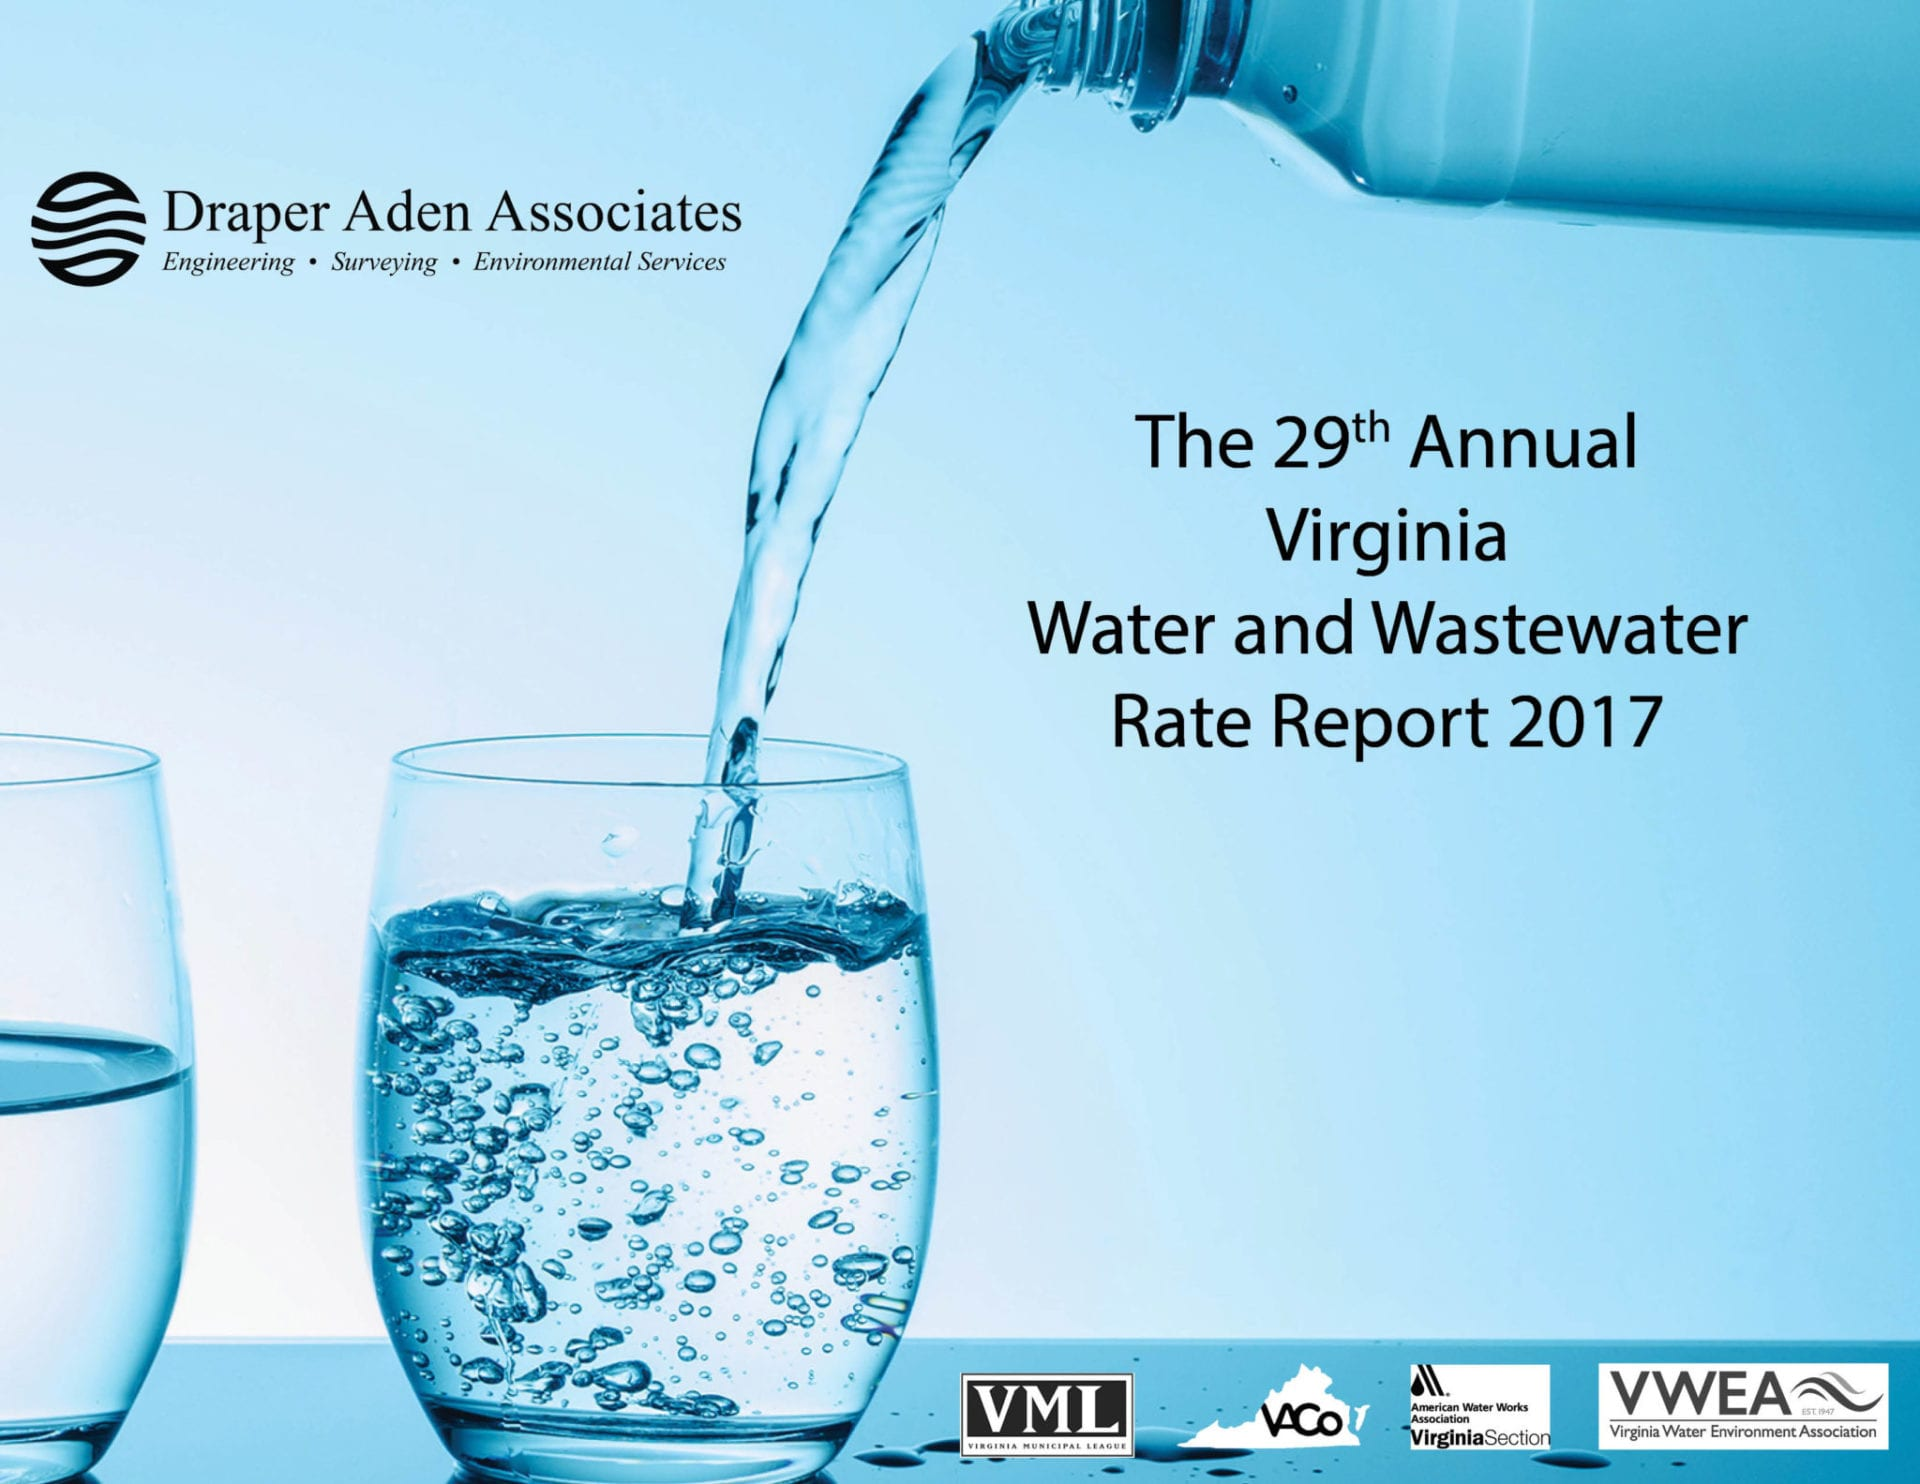 latest report on water and wastewater The wastewater division is responsible for locating all utility lines for contractors throughout the service area, repairs, construction of new facilities, line cleaning, new facility connections and other duties.